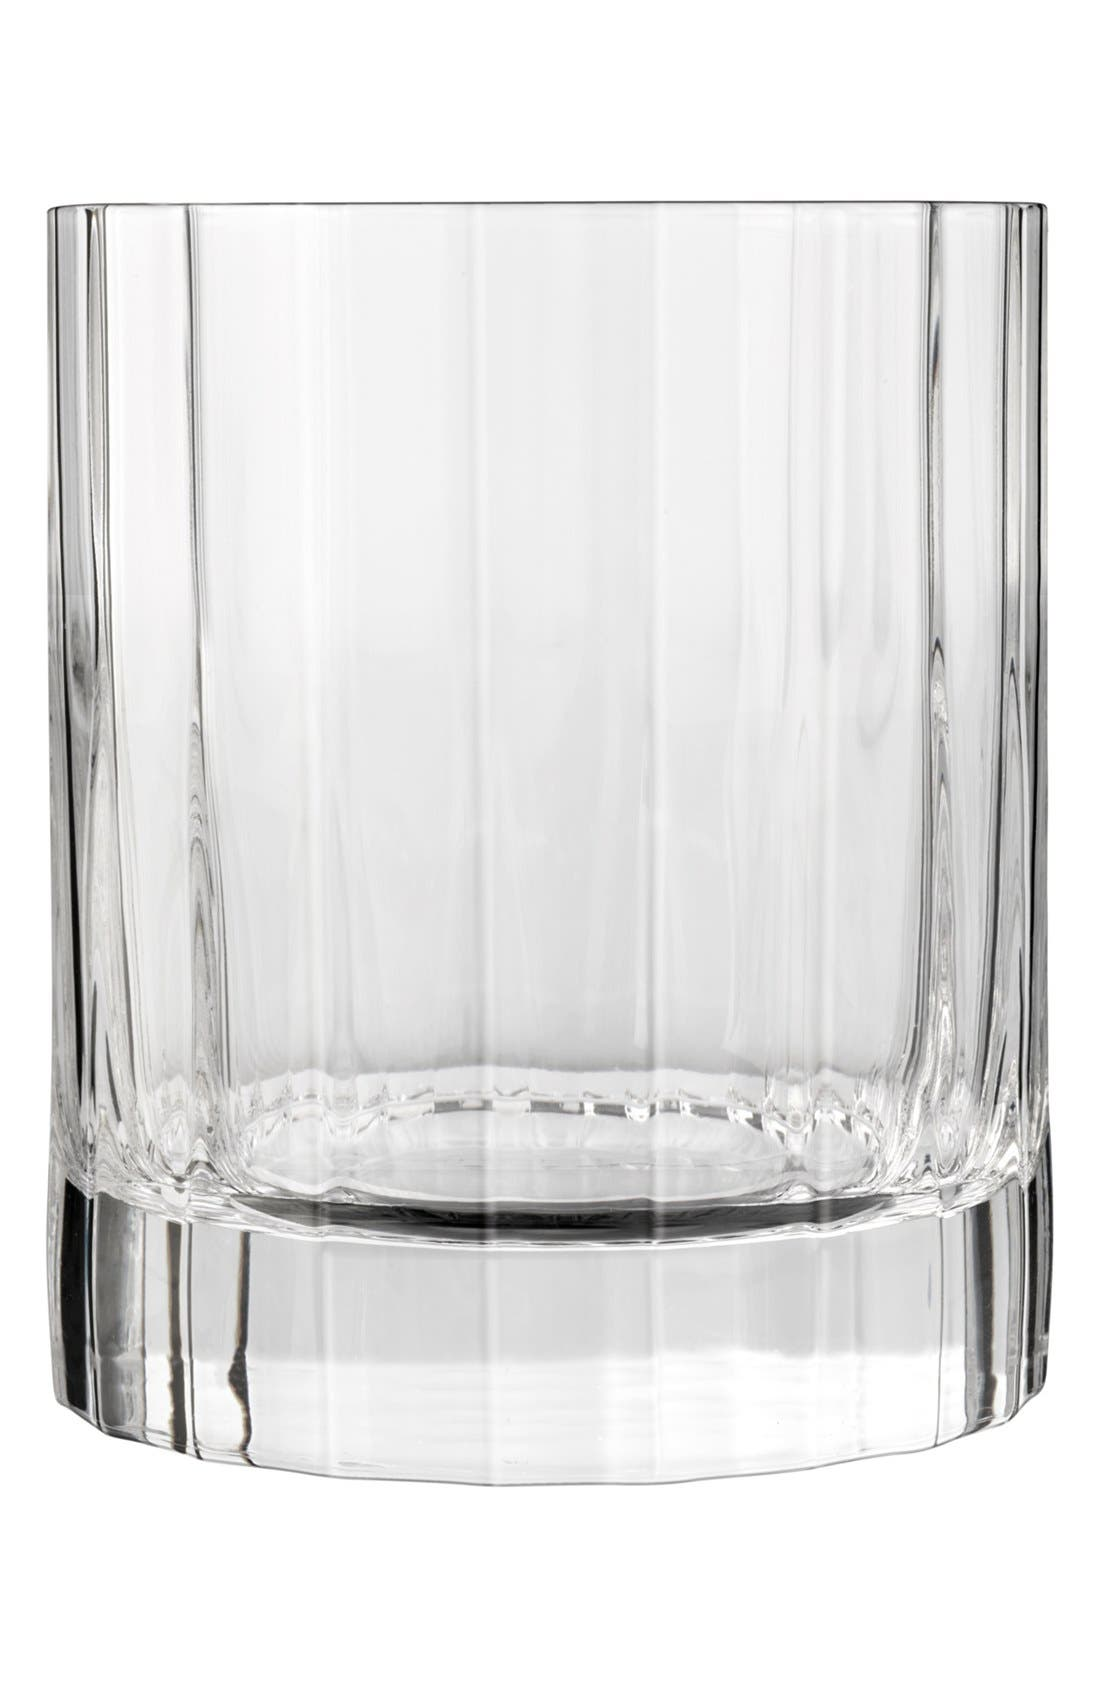 LUIGI BORMIOLI 'Bach' Double Old Fashioned Glasses